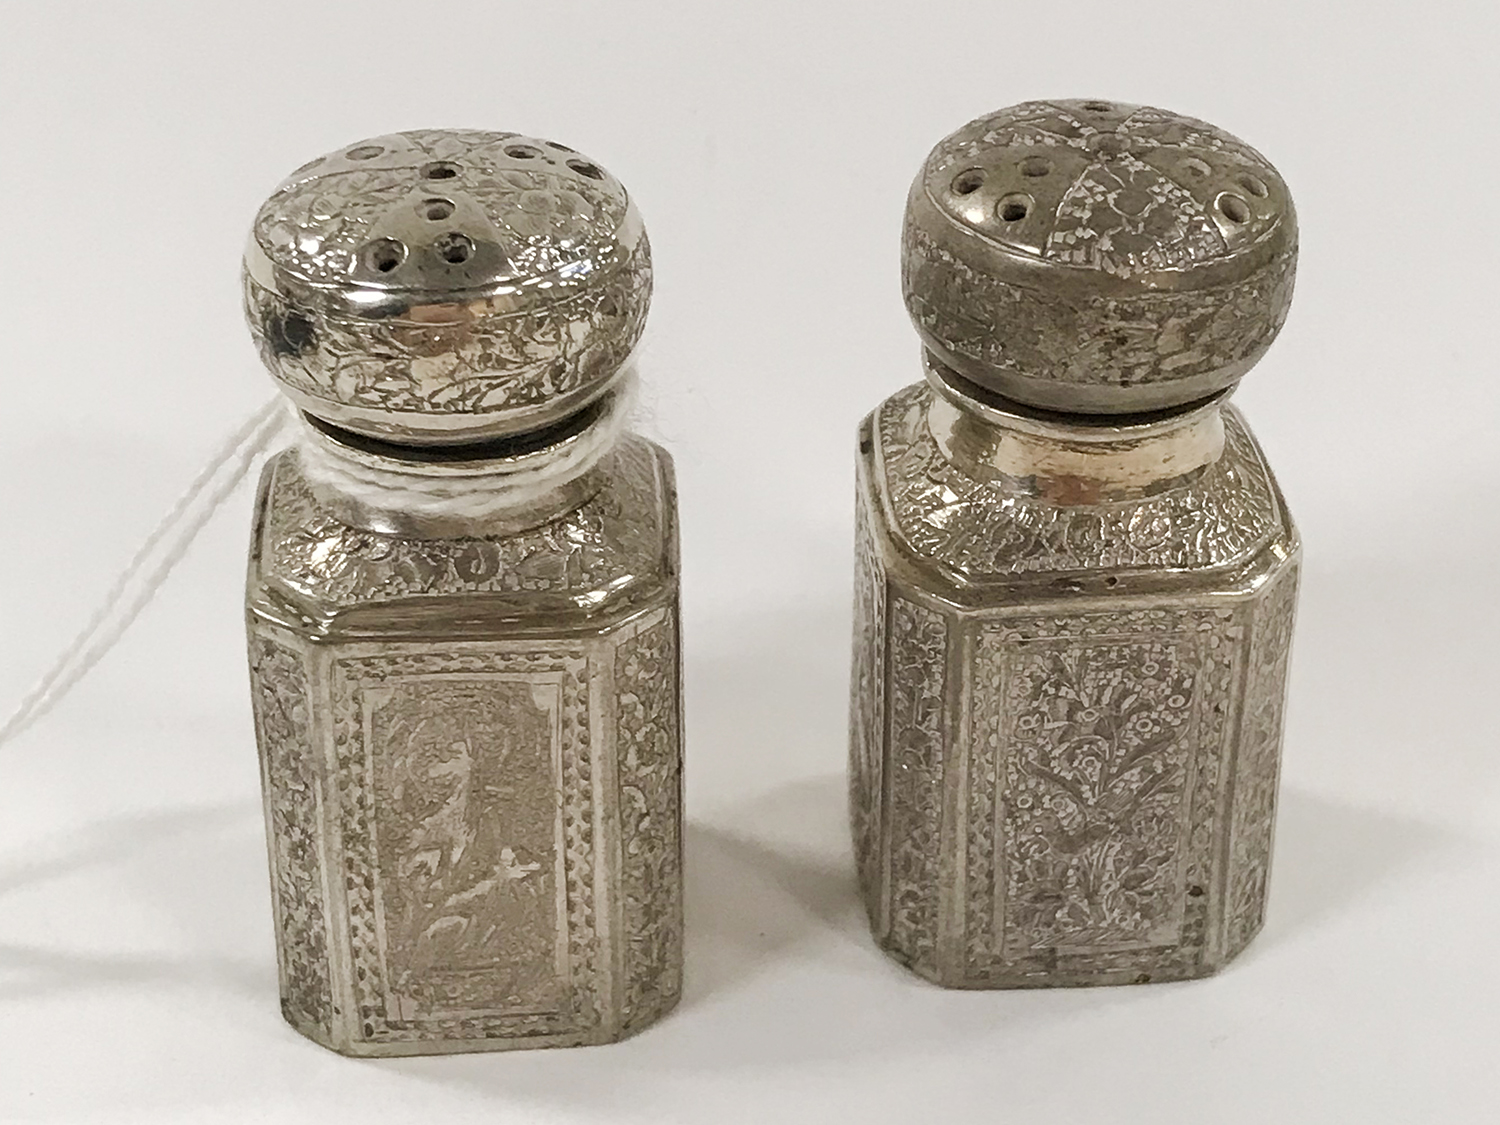 TWO PERSIAN SILVER PEPPER POTS - Image 2 of 6